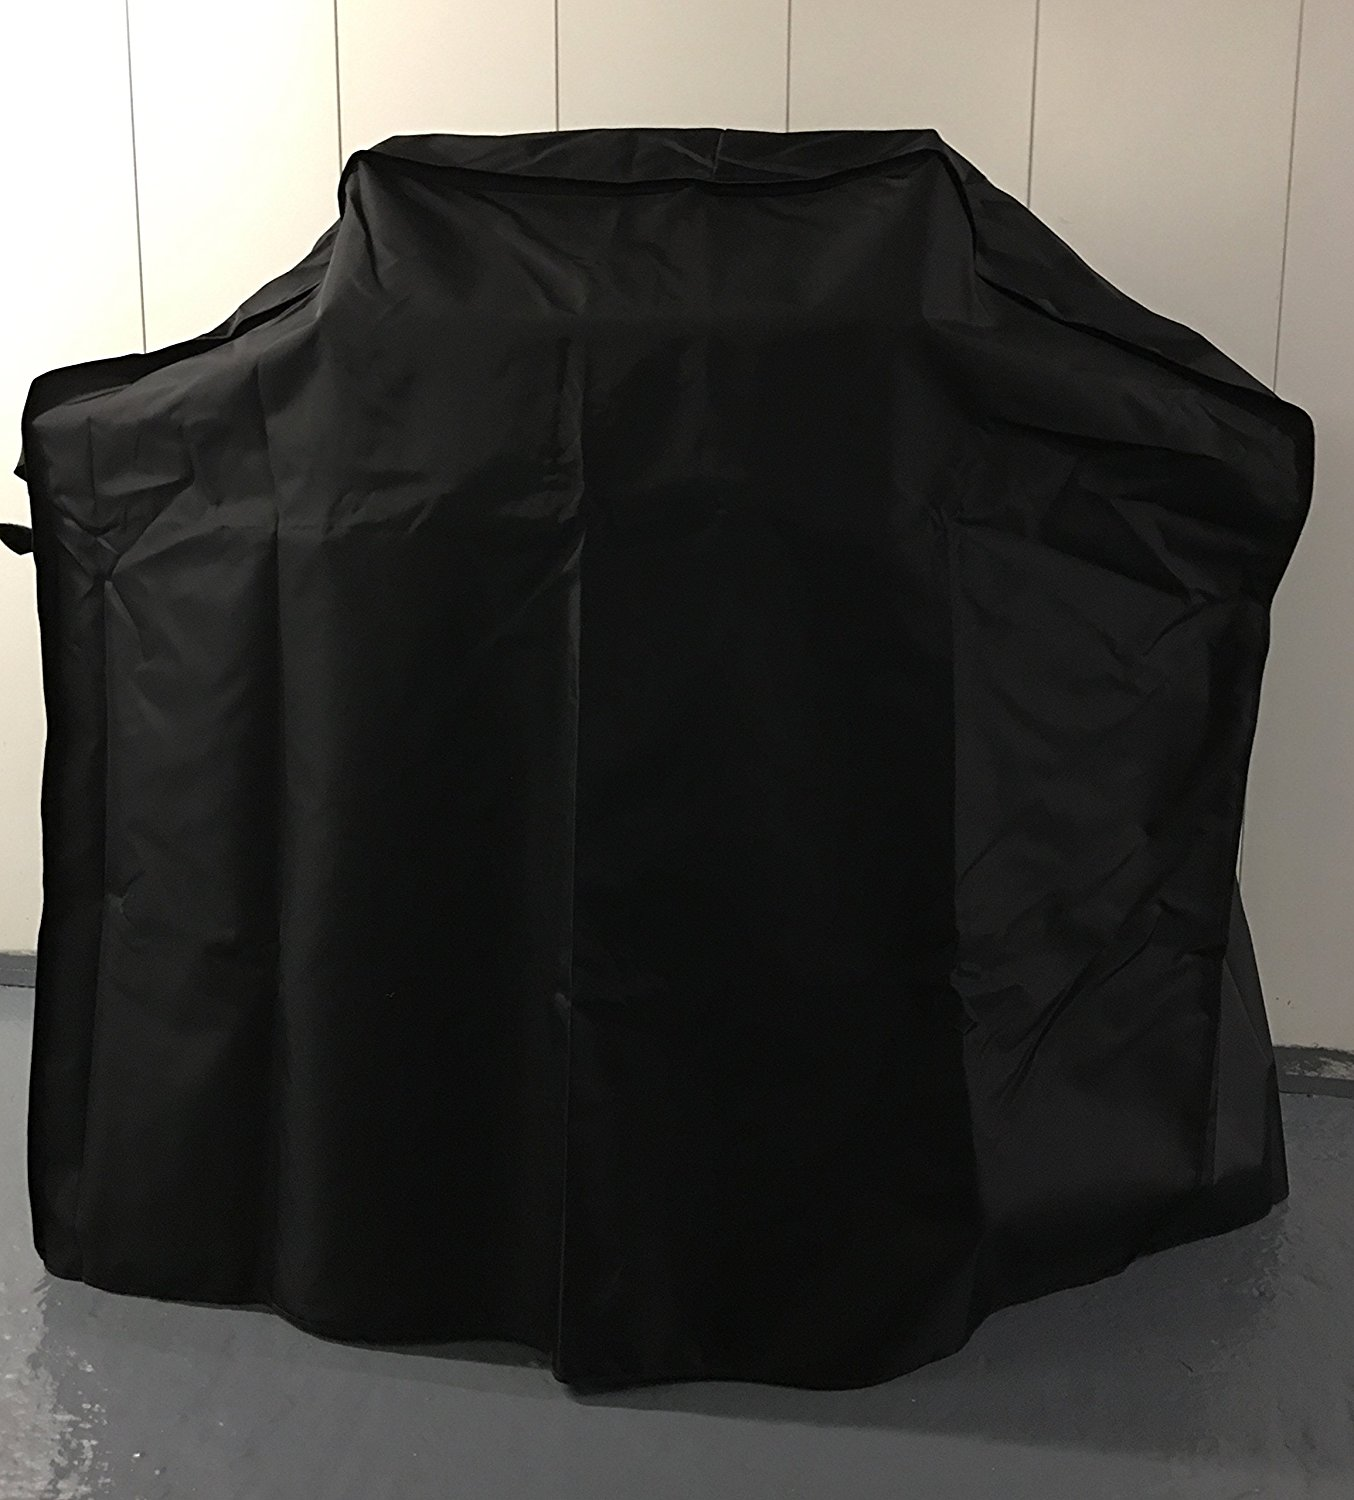 Comp Bind Technology Grill Cover for Weber Spirit E-310 Gas Grill Custom Fitting Outdoor, Waterproof Black Cover - 51''W x 33''D x 48''H